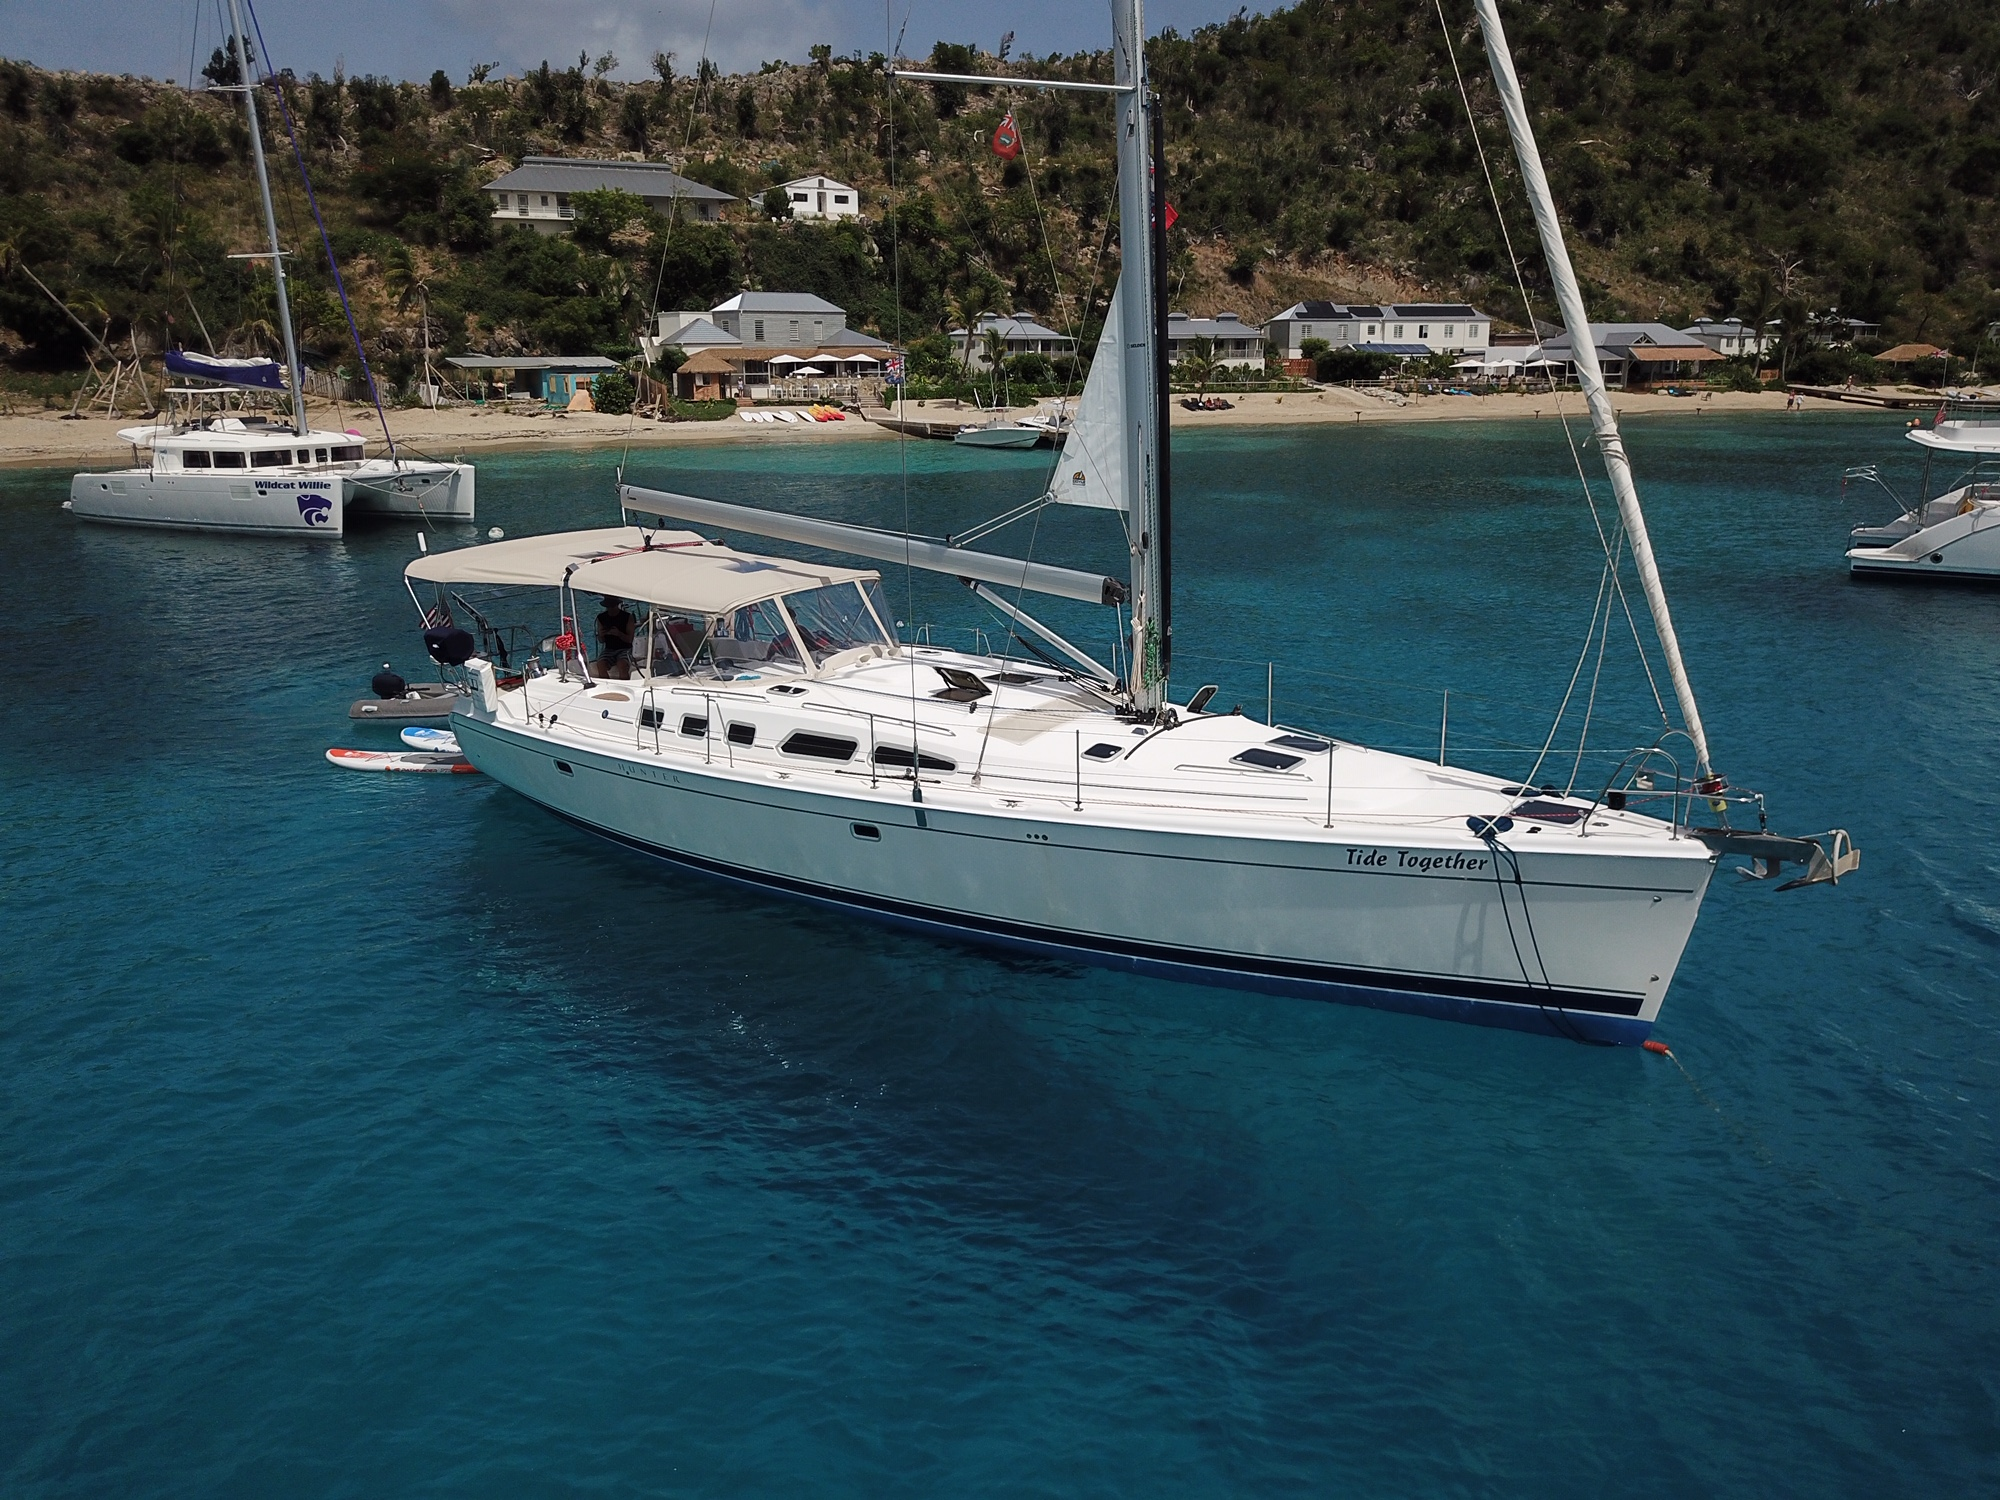 Hunter 49 Right where You want to be, Anchored at Cooper!